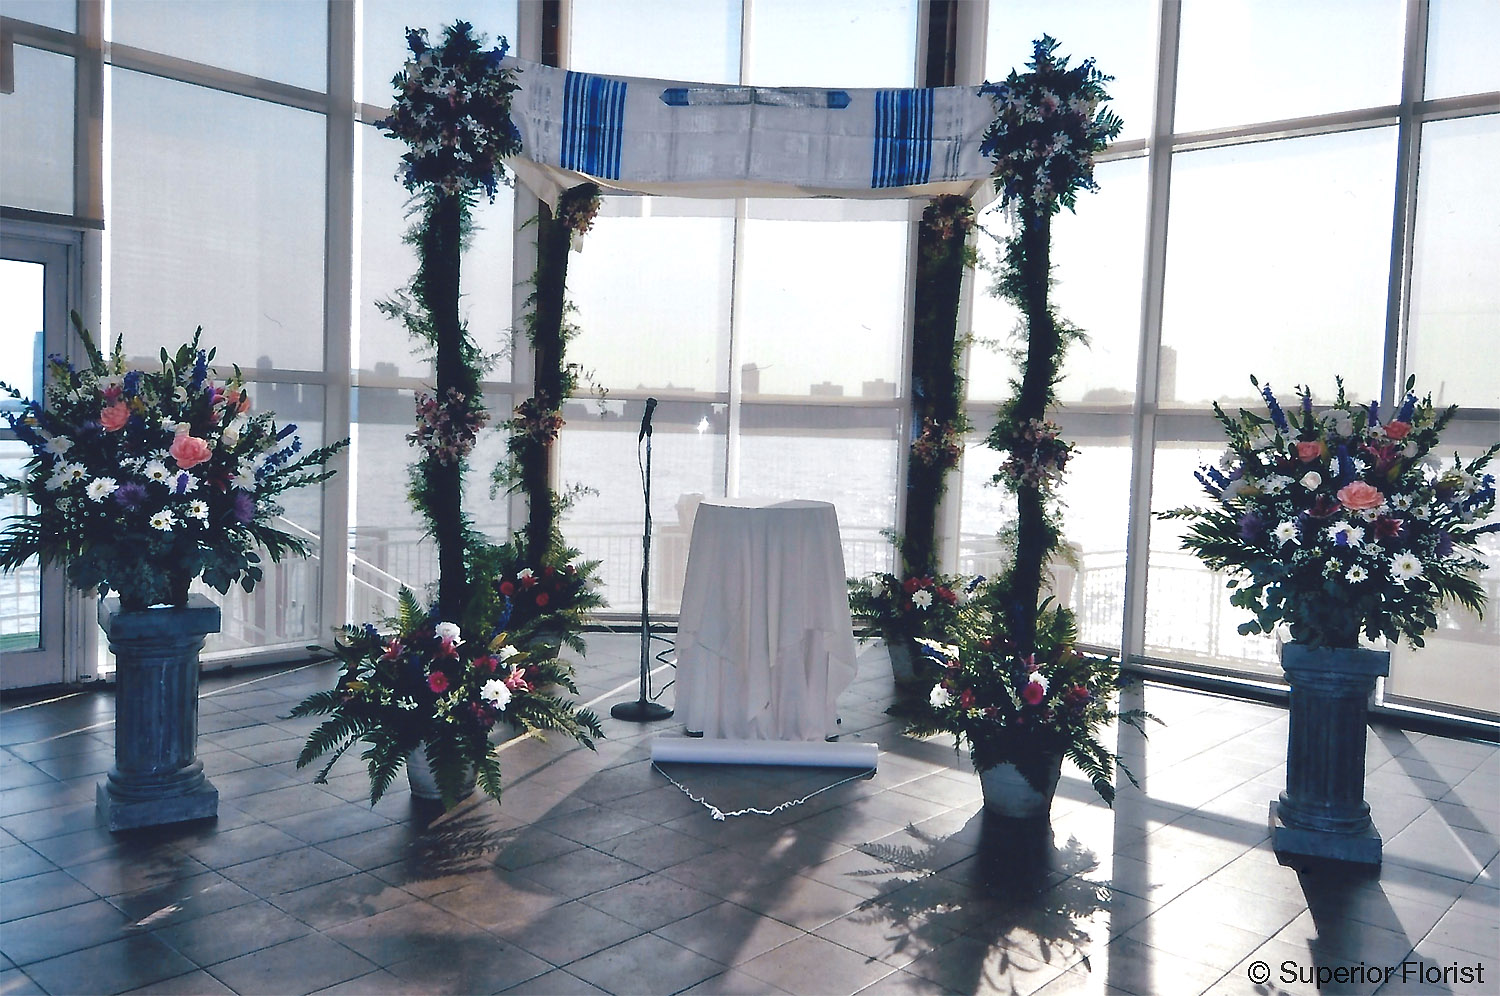 Superior Florist – Wedding Ceremony: Birch pole chuppah with family tallis on top. Flanked by two matching basket arrangements on pedestals.